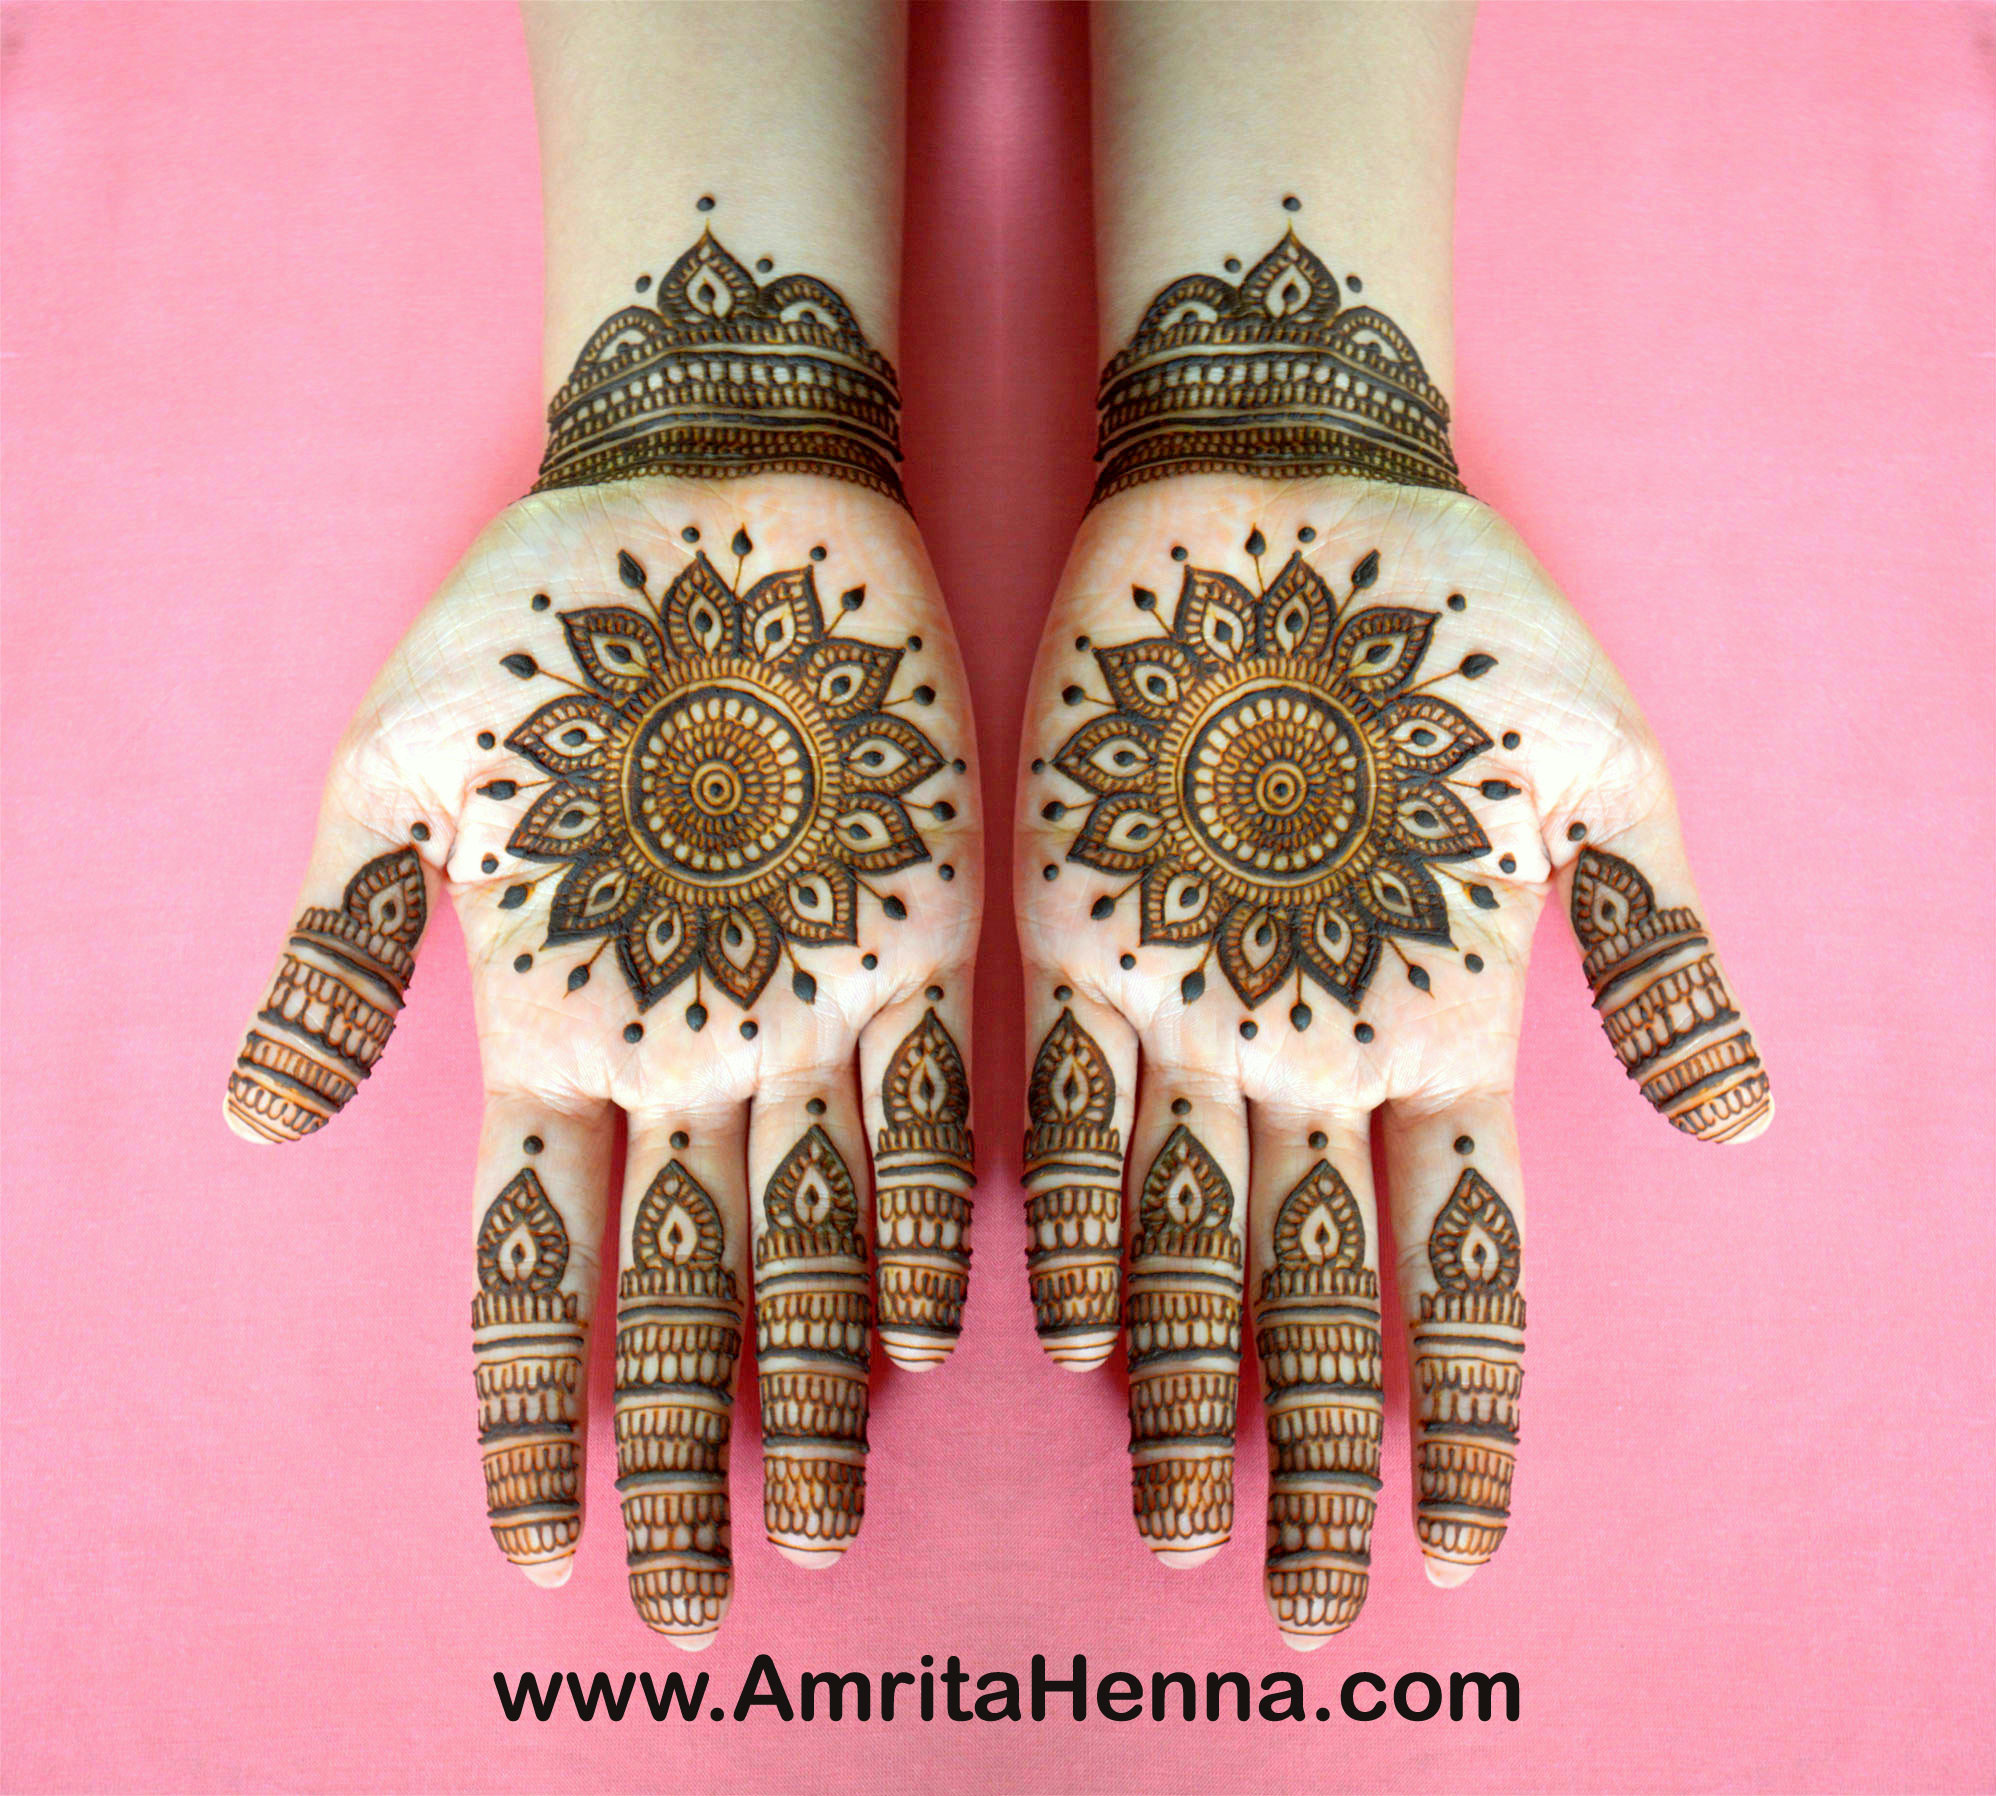 Indian Bridal Henna Designs: TOP 10 INTRICATE TRADITIONAL INDIAN BRIDAL HENNA MEHNDI